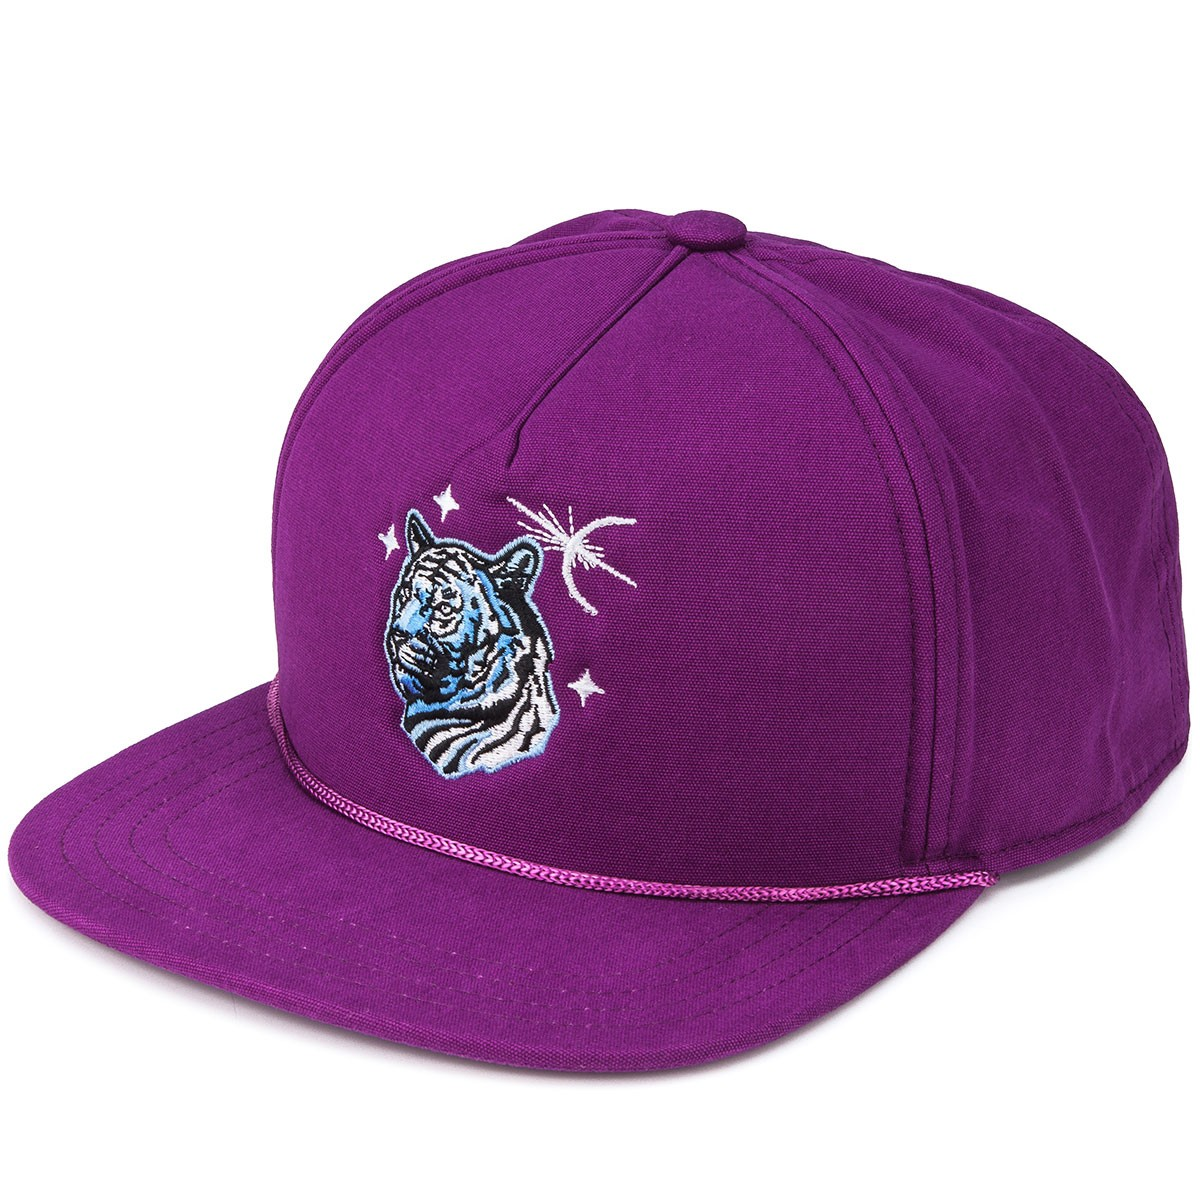 cdadaab1bb1 coal-the-lore-hat-purple-1.1506664606.jpg